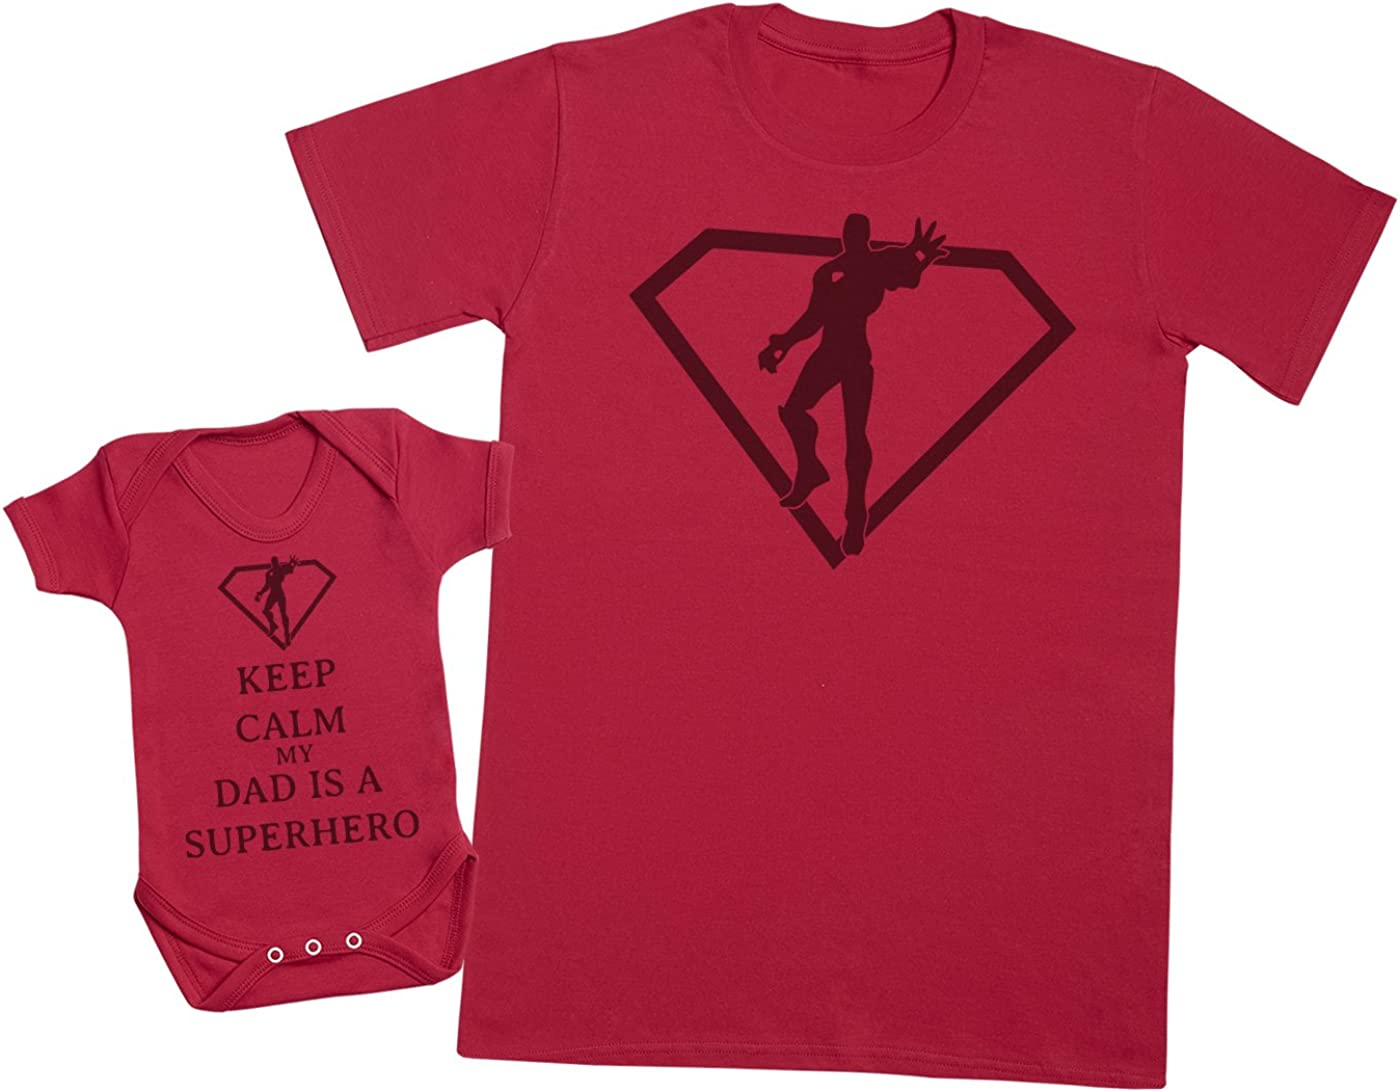 Keep Calm Dad is A Super Hero Mens T Shirt /& Baby Bodysuit Matching Father Baby Gift Set